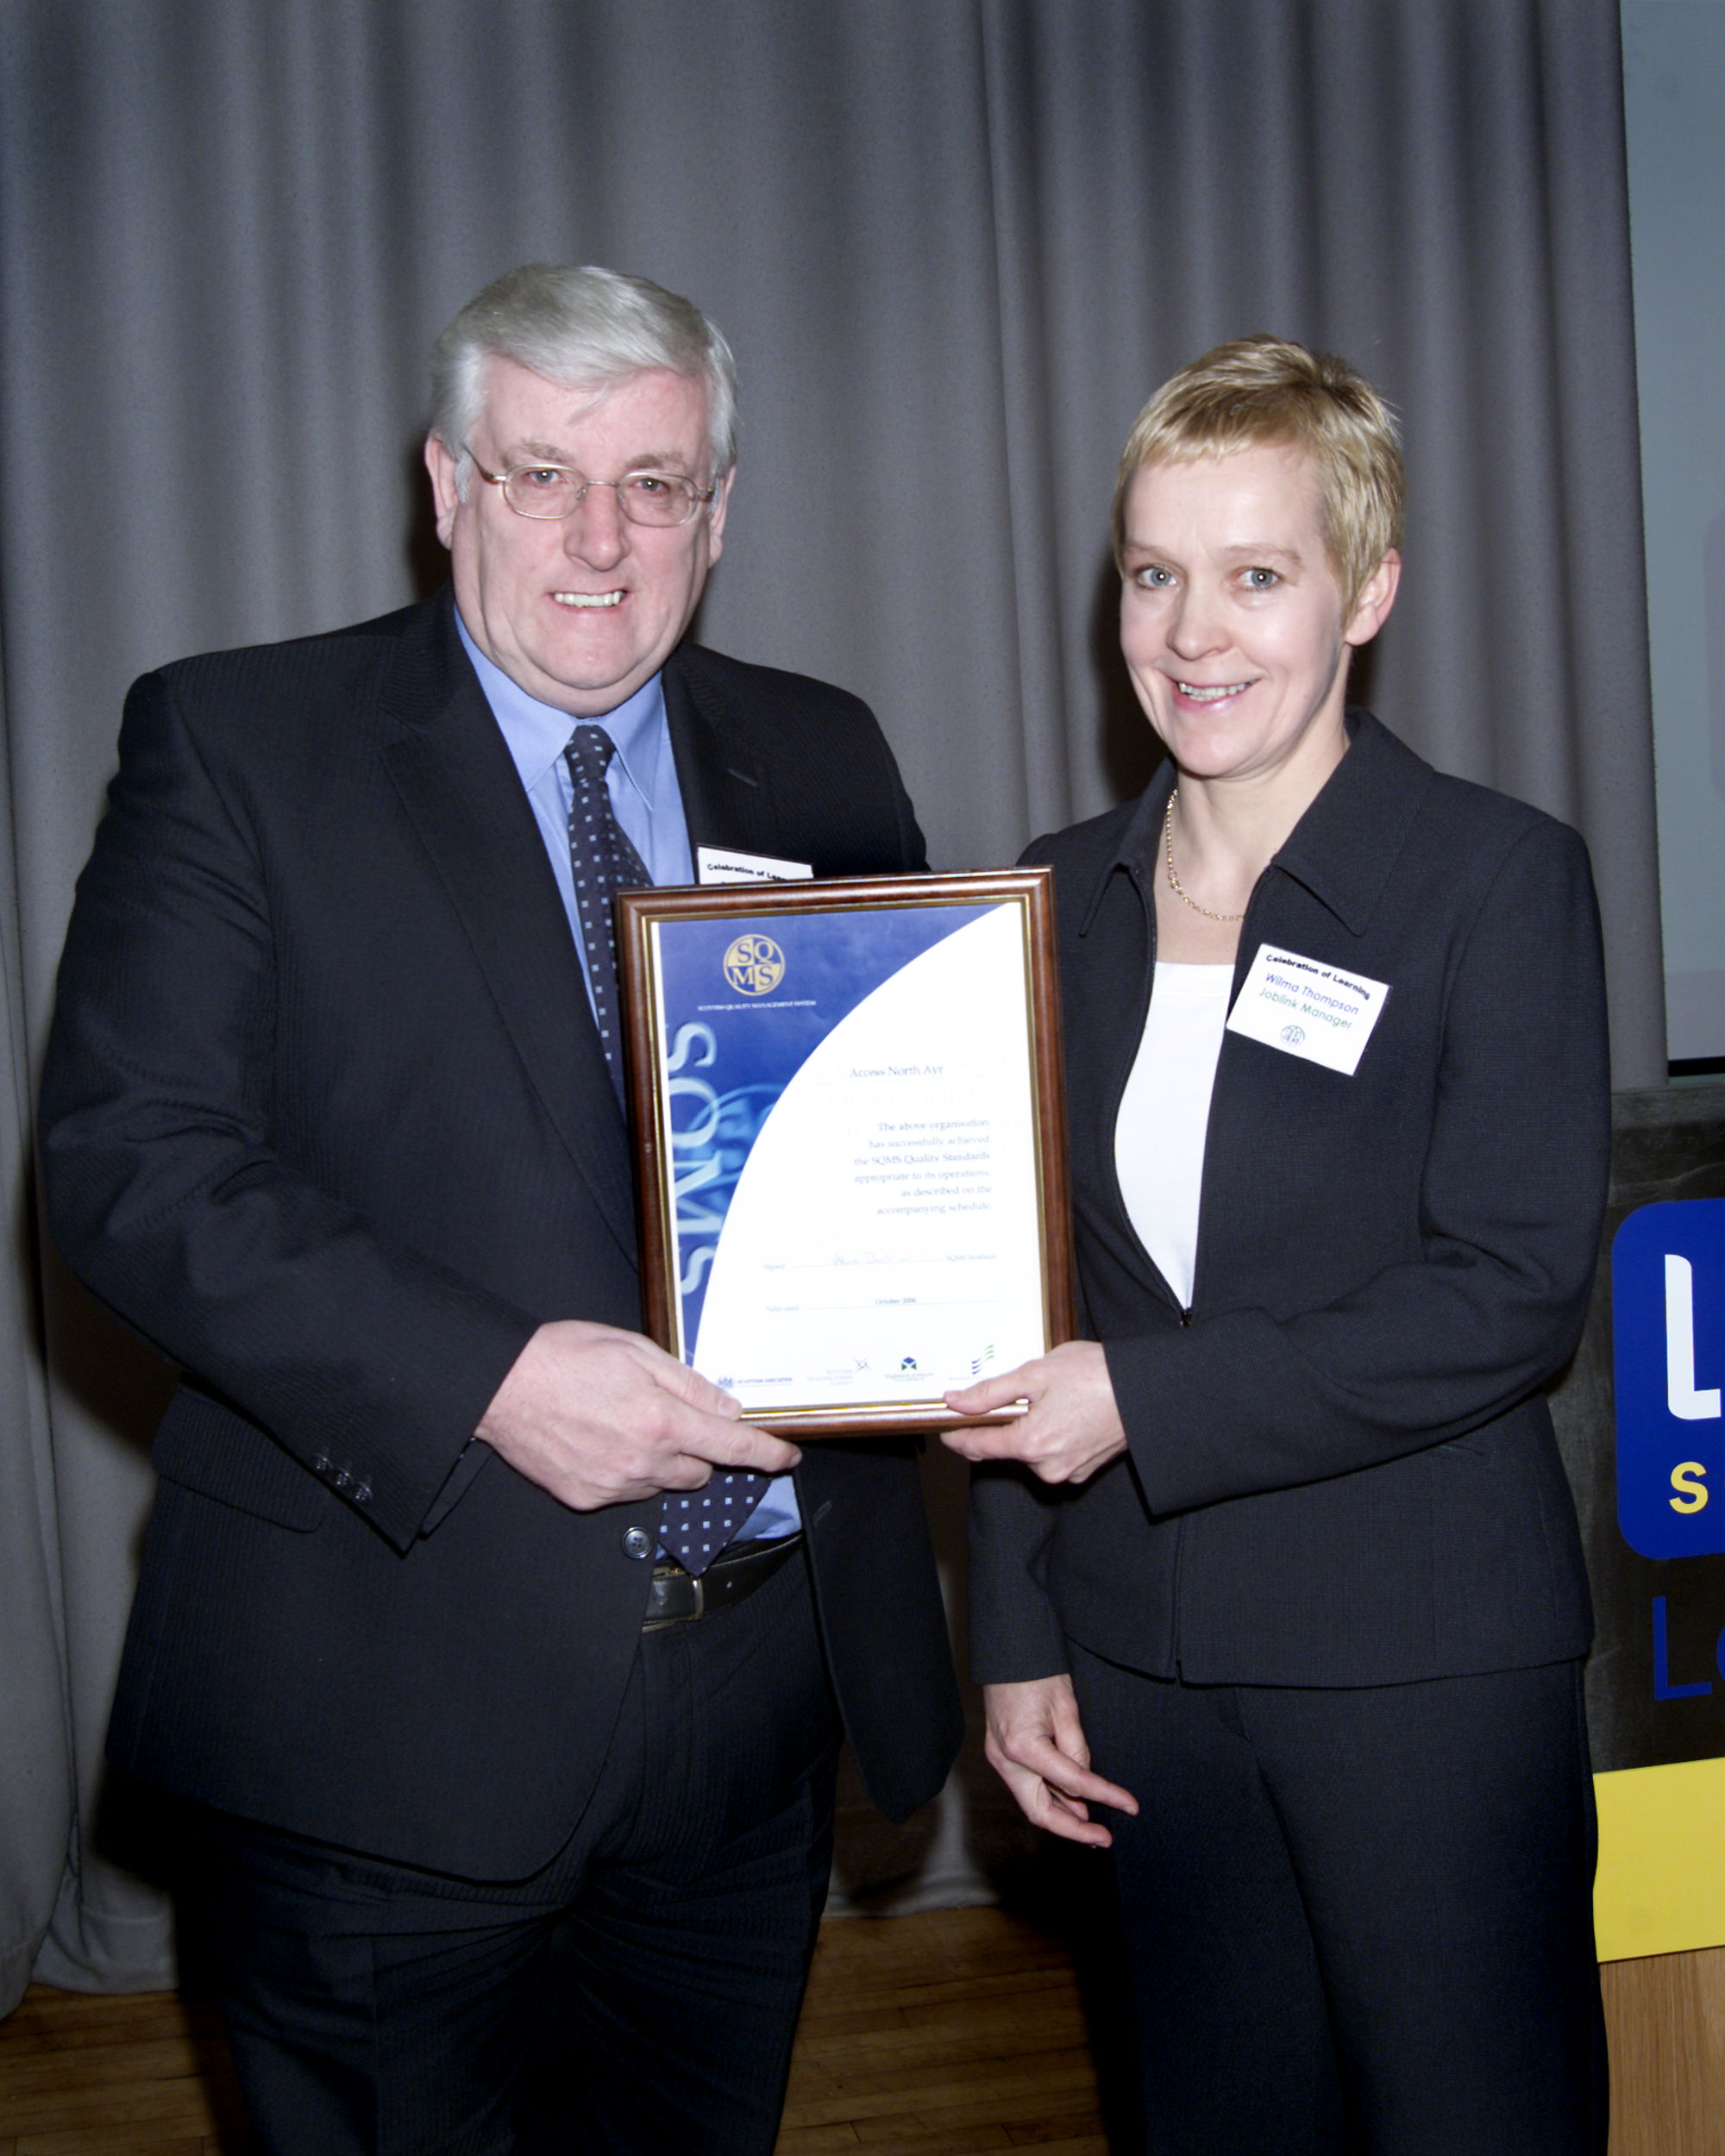 Learndirect Scotland chief executive Frank Pignatelli presents the SQMS award to Access North Ayr Job Link manager Wilma Thompson.